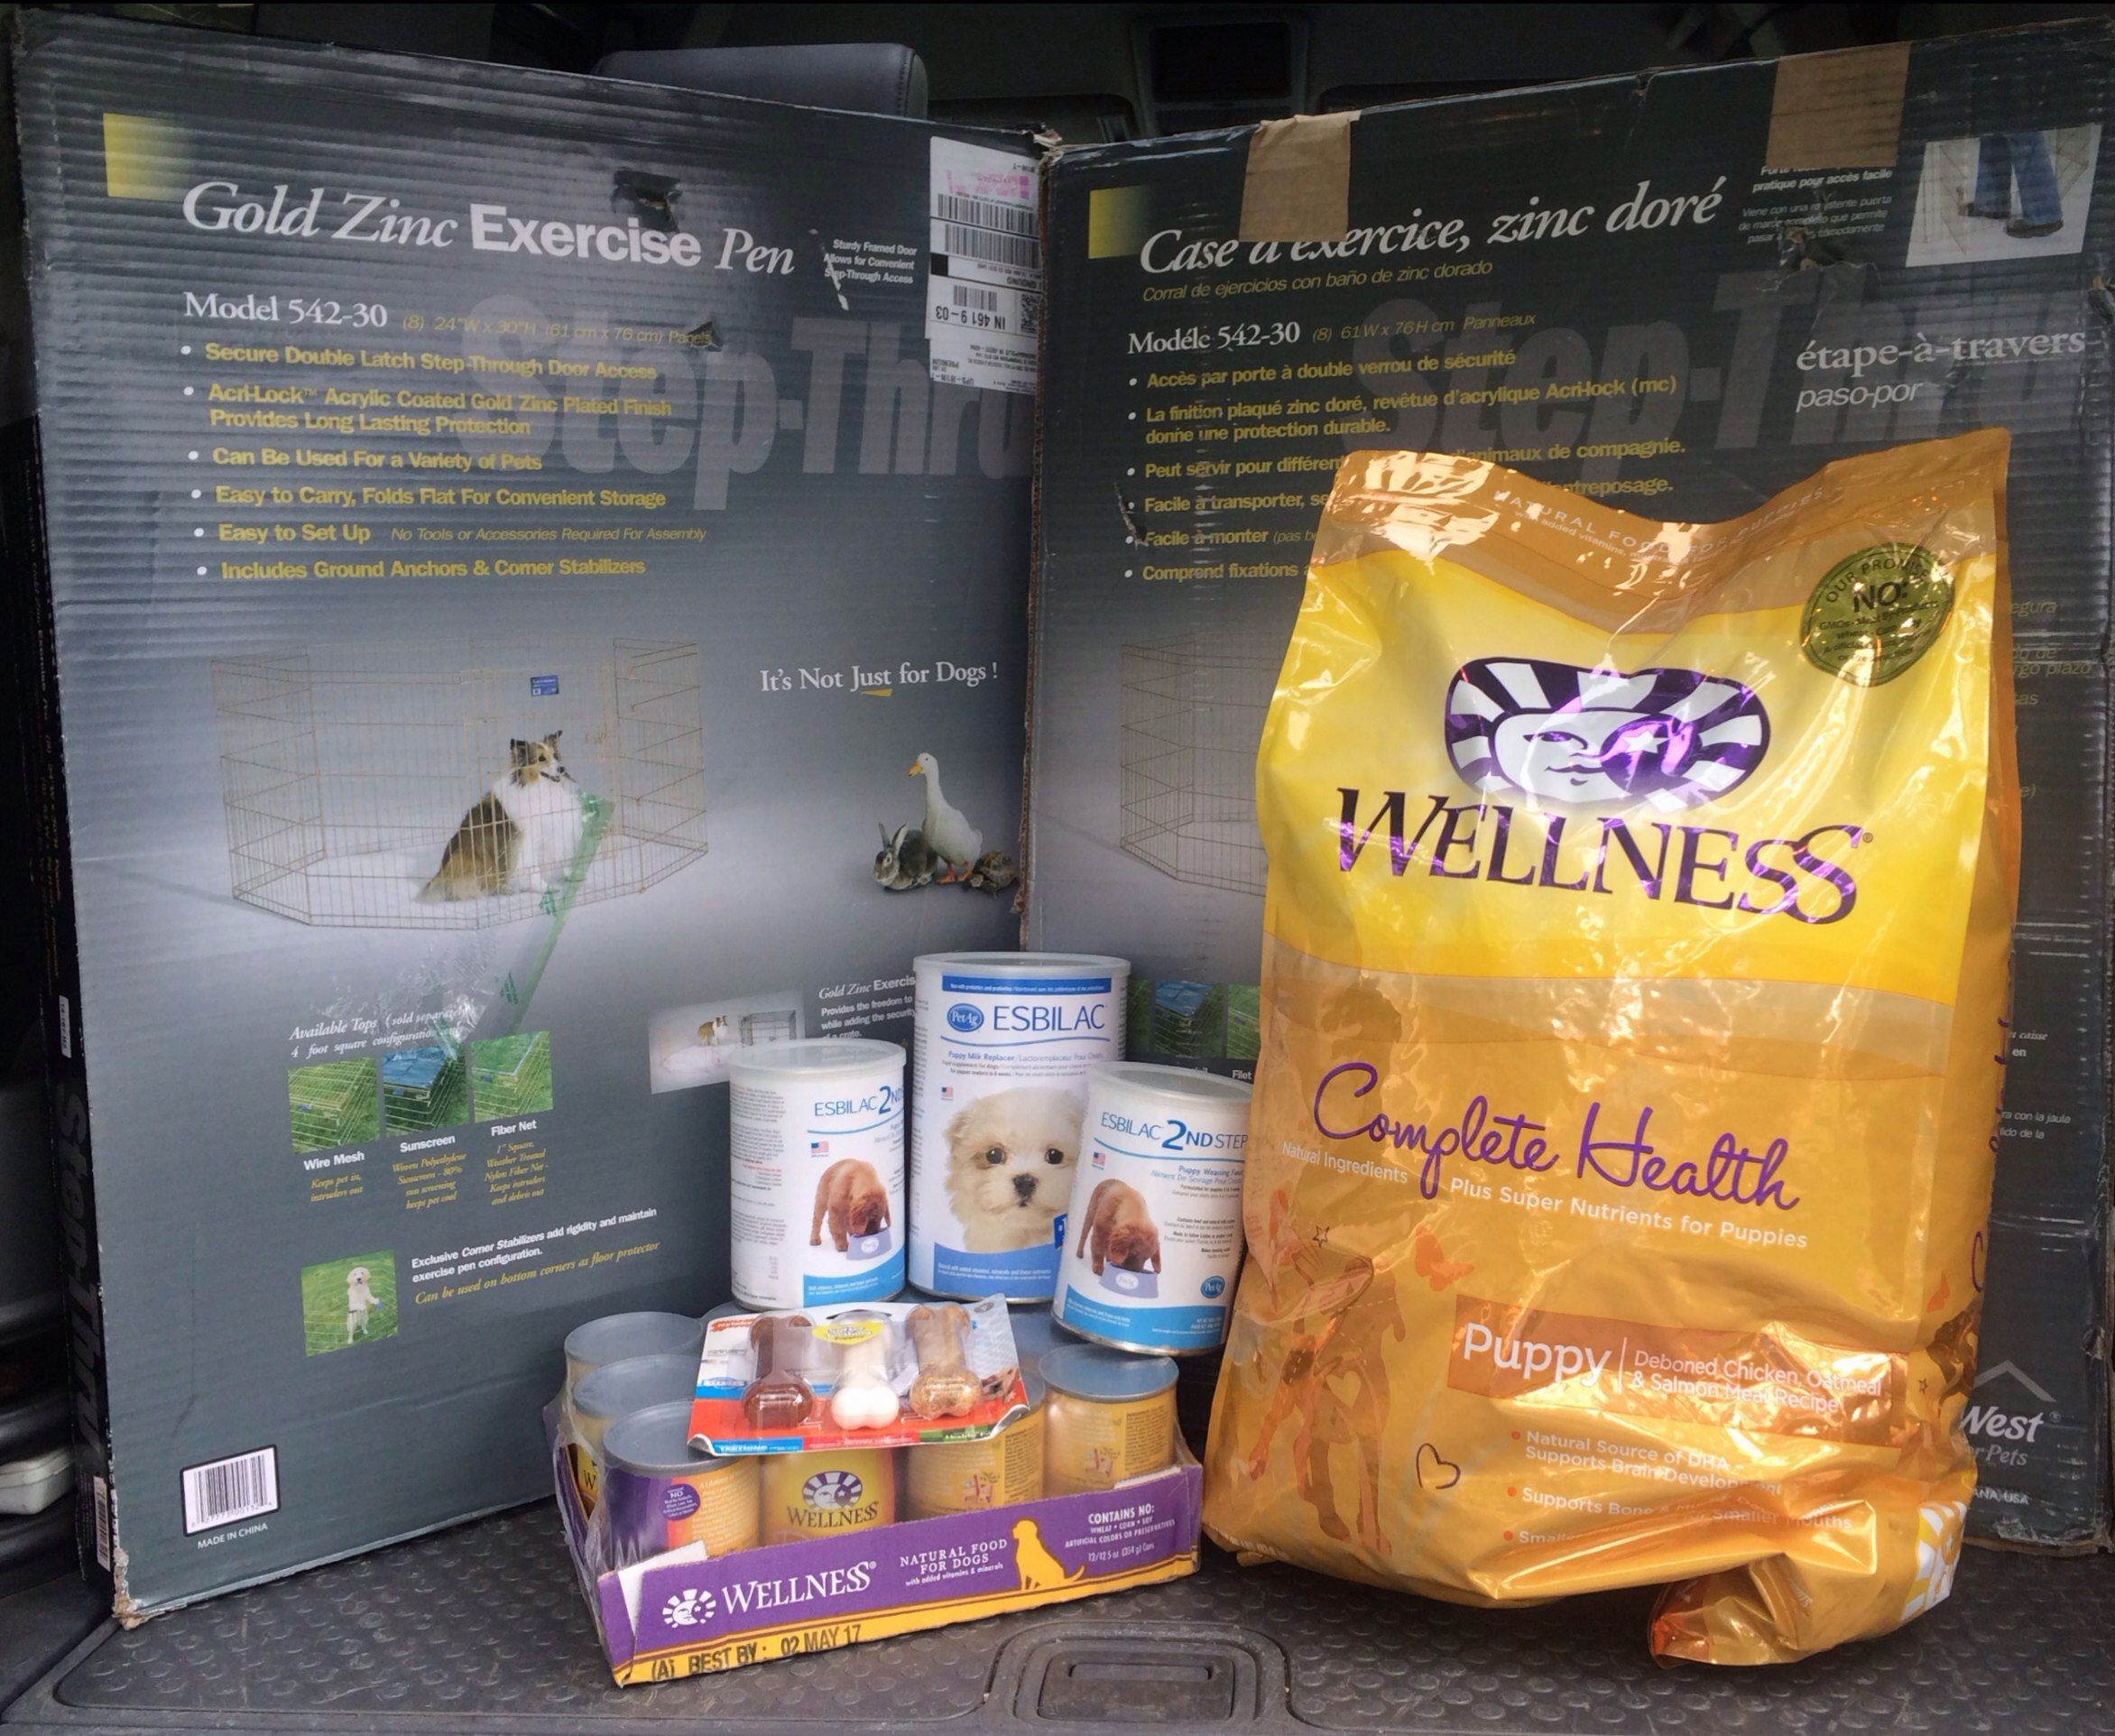 A huge thanks to Bonnie, Lisa, Jason, Jenni, Jes, Karen, Stephanee & all of your anonymous donors. These supplies made it just in time and saved us a trip to the store!